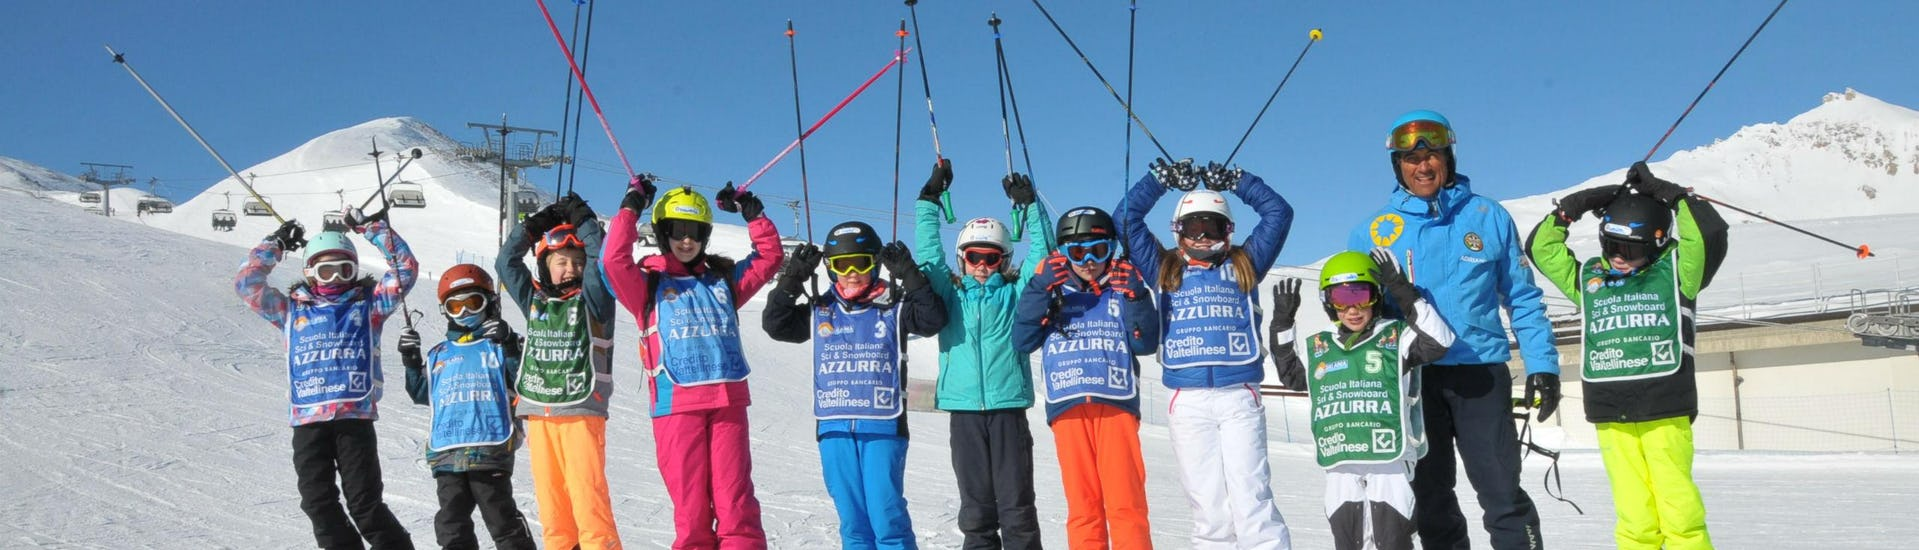 A group of children is enjoying their Kids Ski Lessons (5-12 y.) - Half Day - With Experience with the ski school Scuola di Sci Azzurra Livigno on the ski slopes of Livigno.